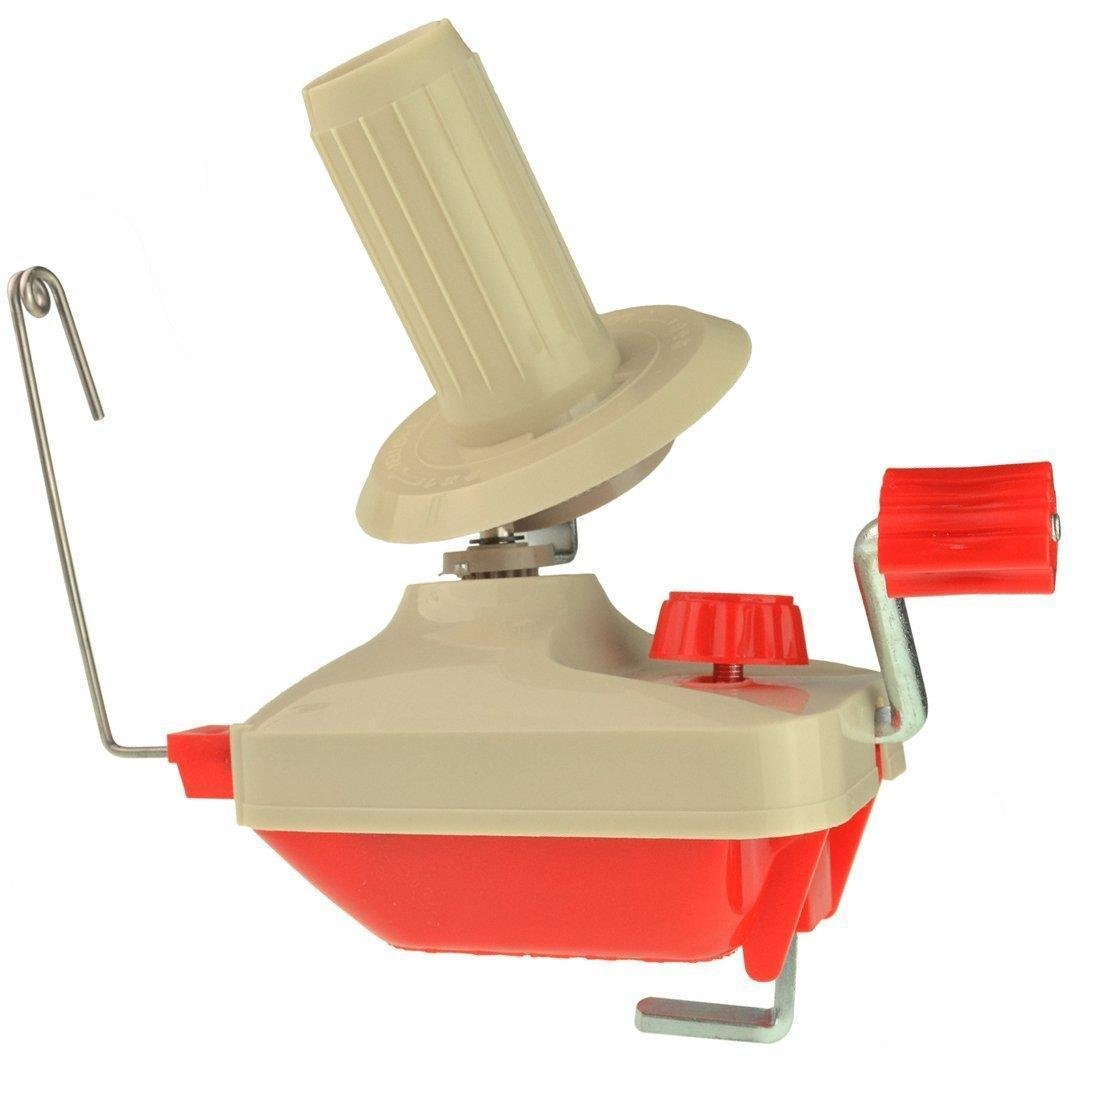 YEQIN Hand Operated Knitting Roll String Yarn Fiber Wool Thread Ball Winder Holder 4336905530